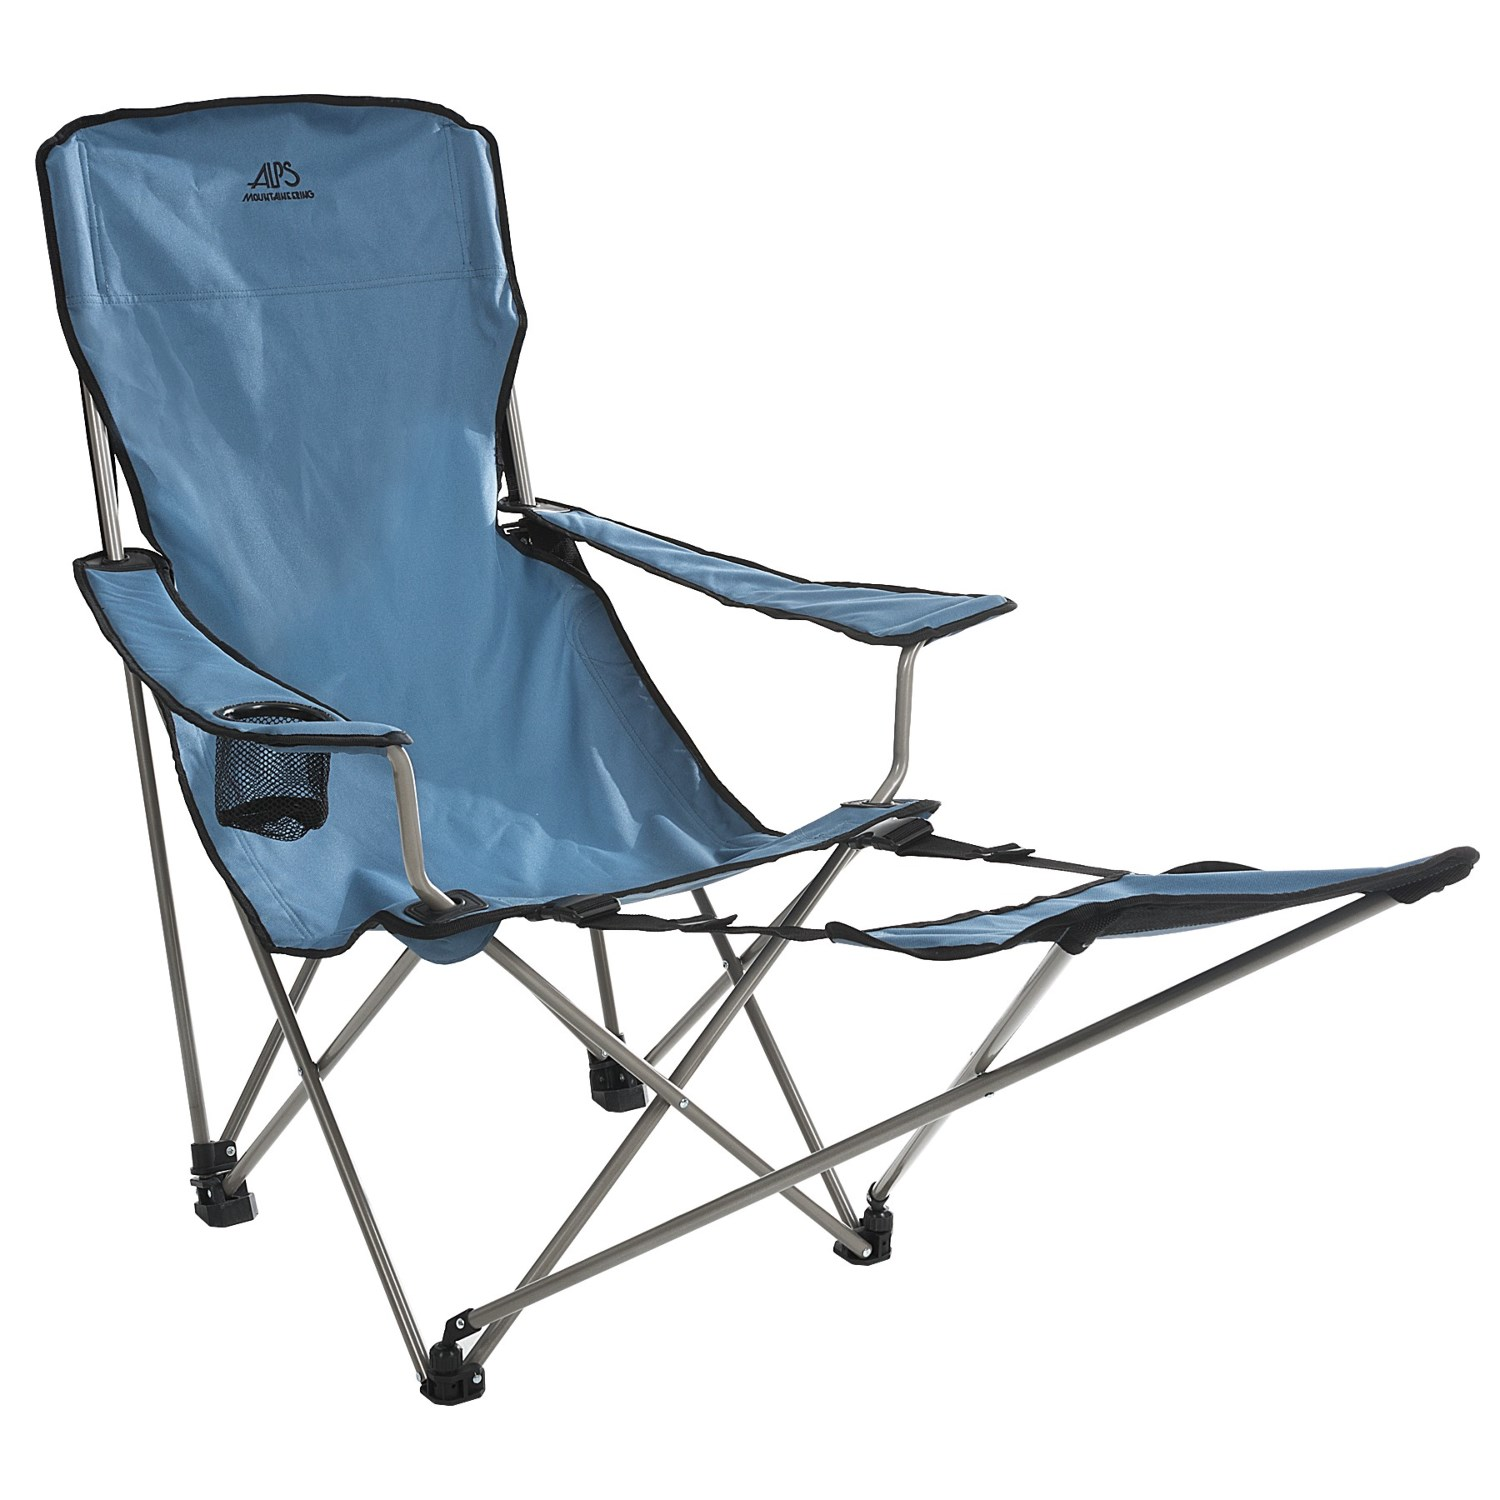 Alps Camp Chair ALPS Mountaineering Rocking Camp Chair Steel